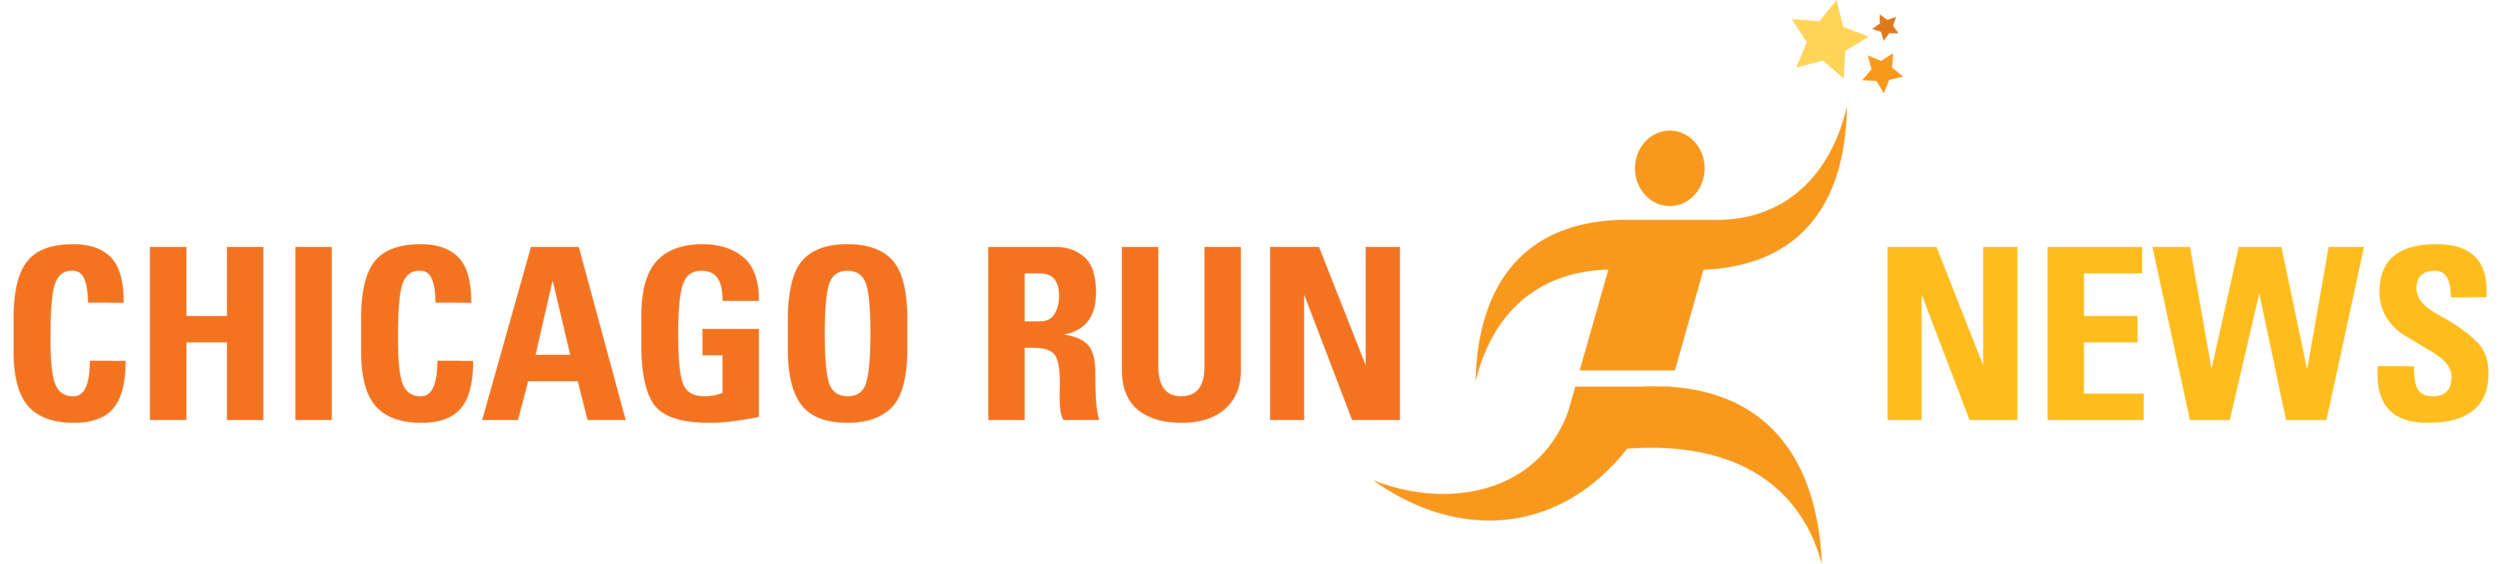 Chicago Run Banner - news.png